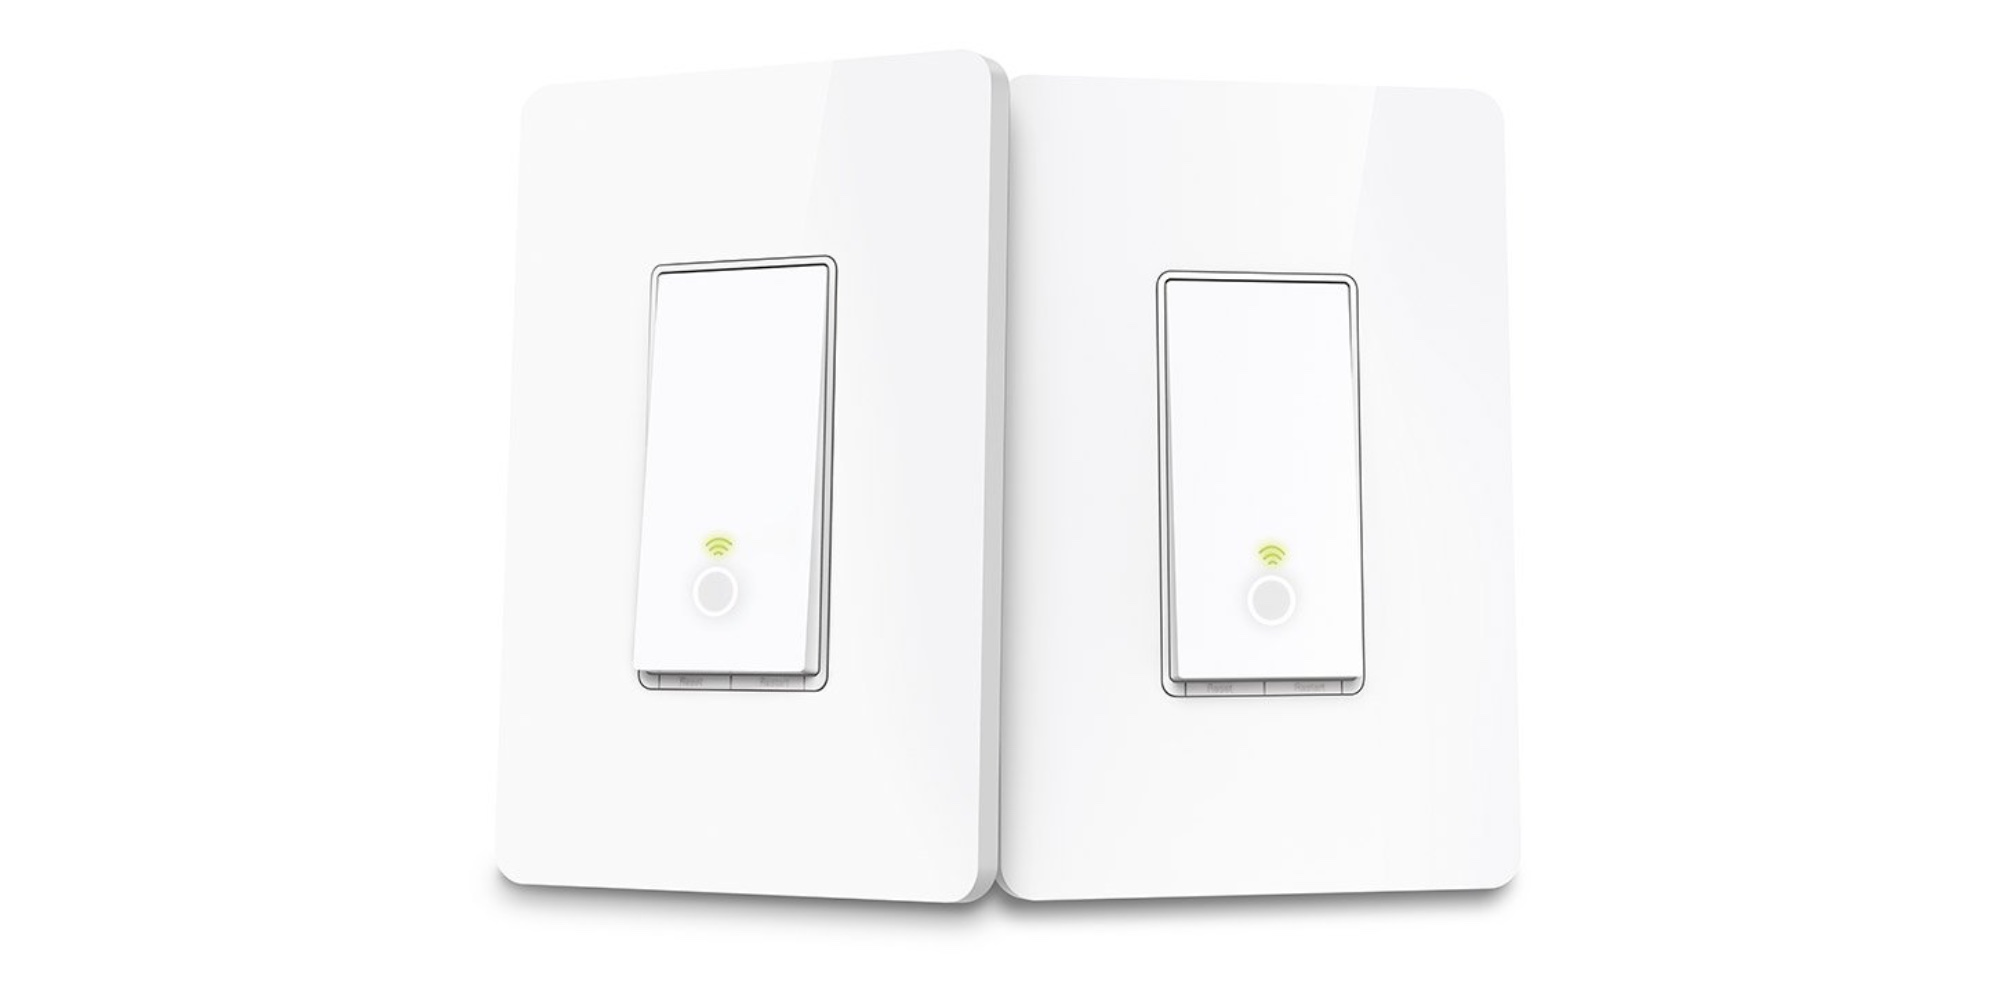 outfit your smart home with two tp